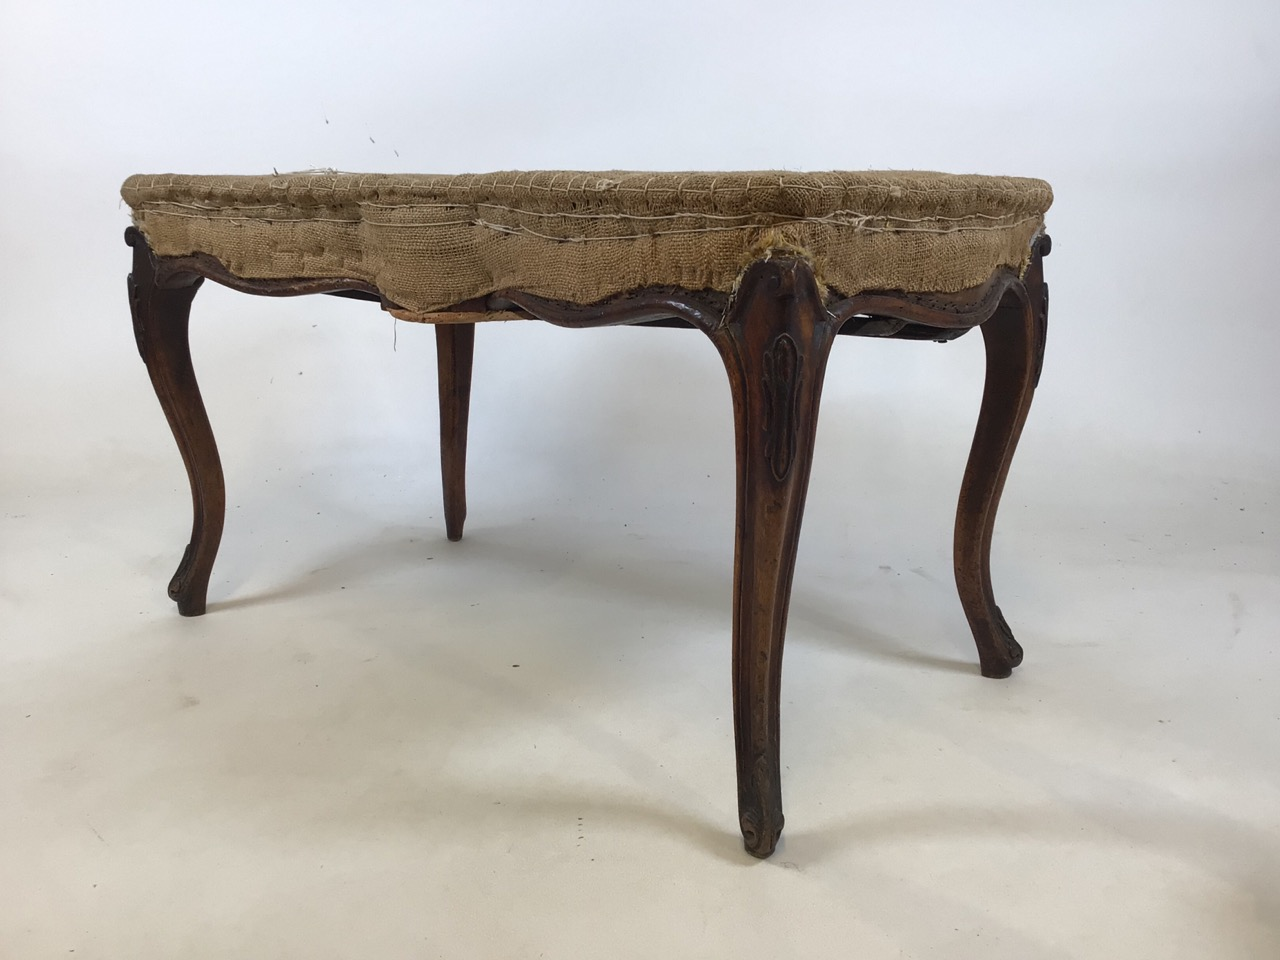 A duet stool with Queen Anne style legs, made from two chairs. W:82cm x D:45cm x H:45cm - Image 2 of 4